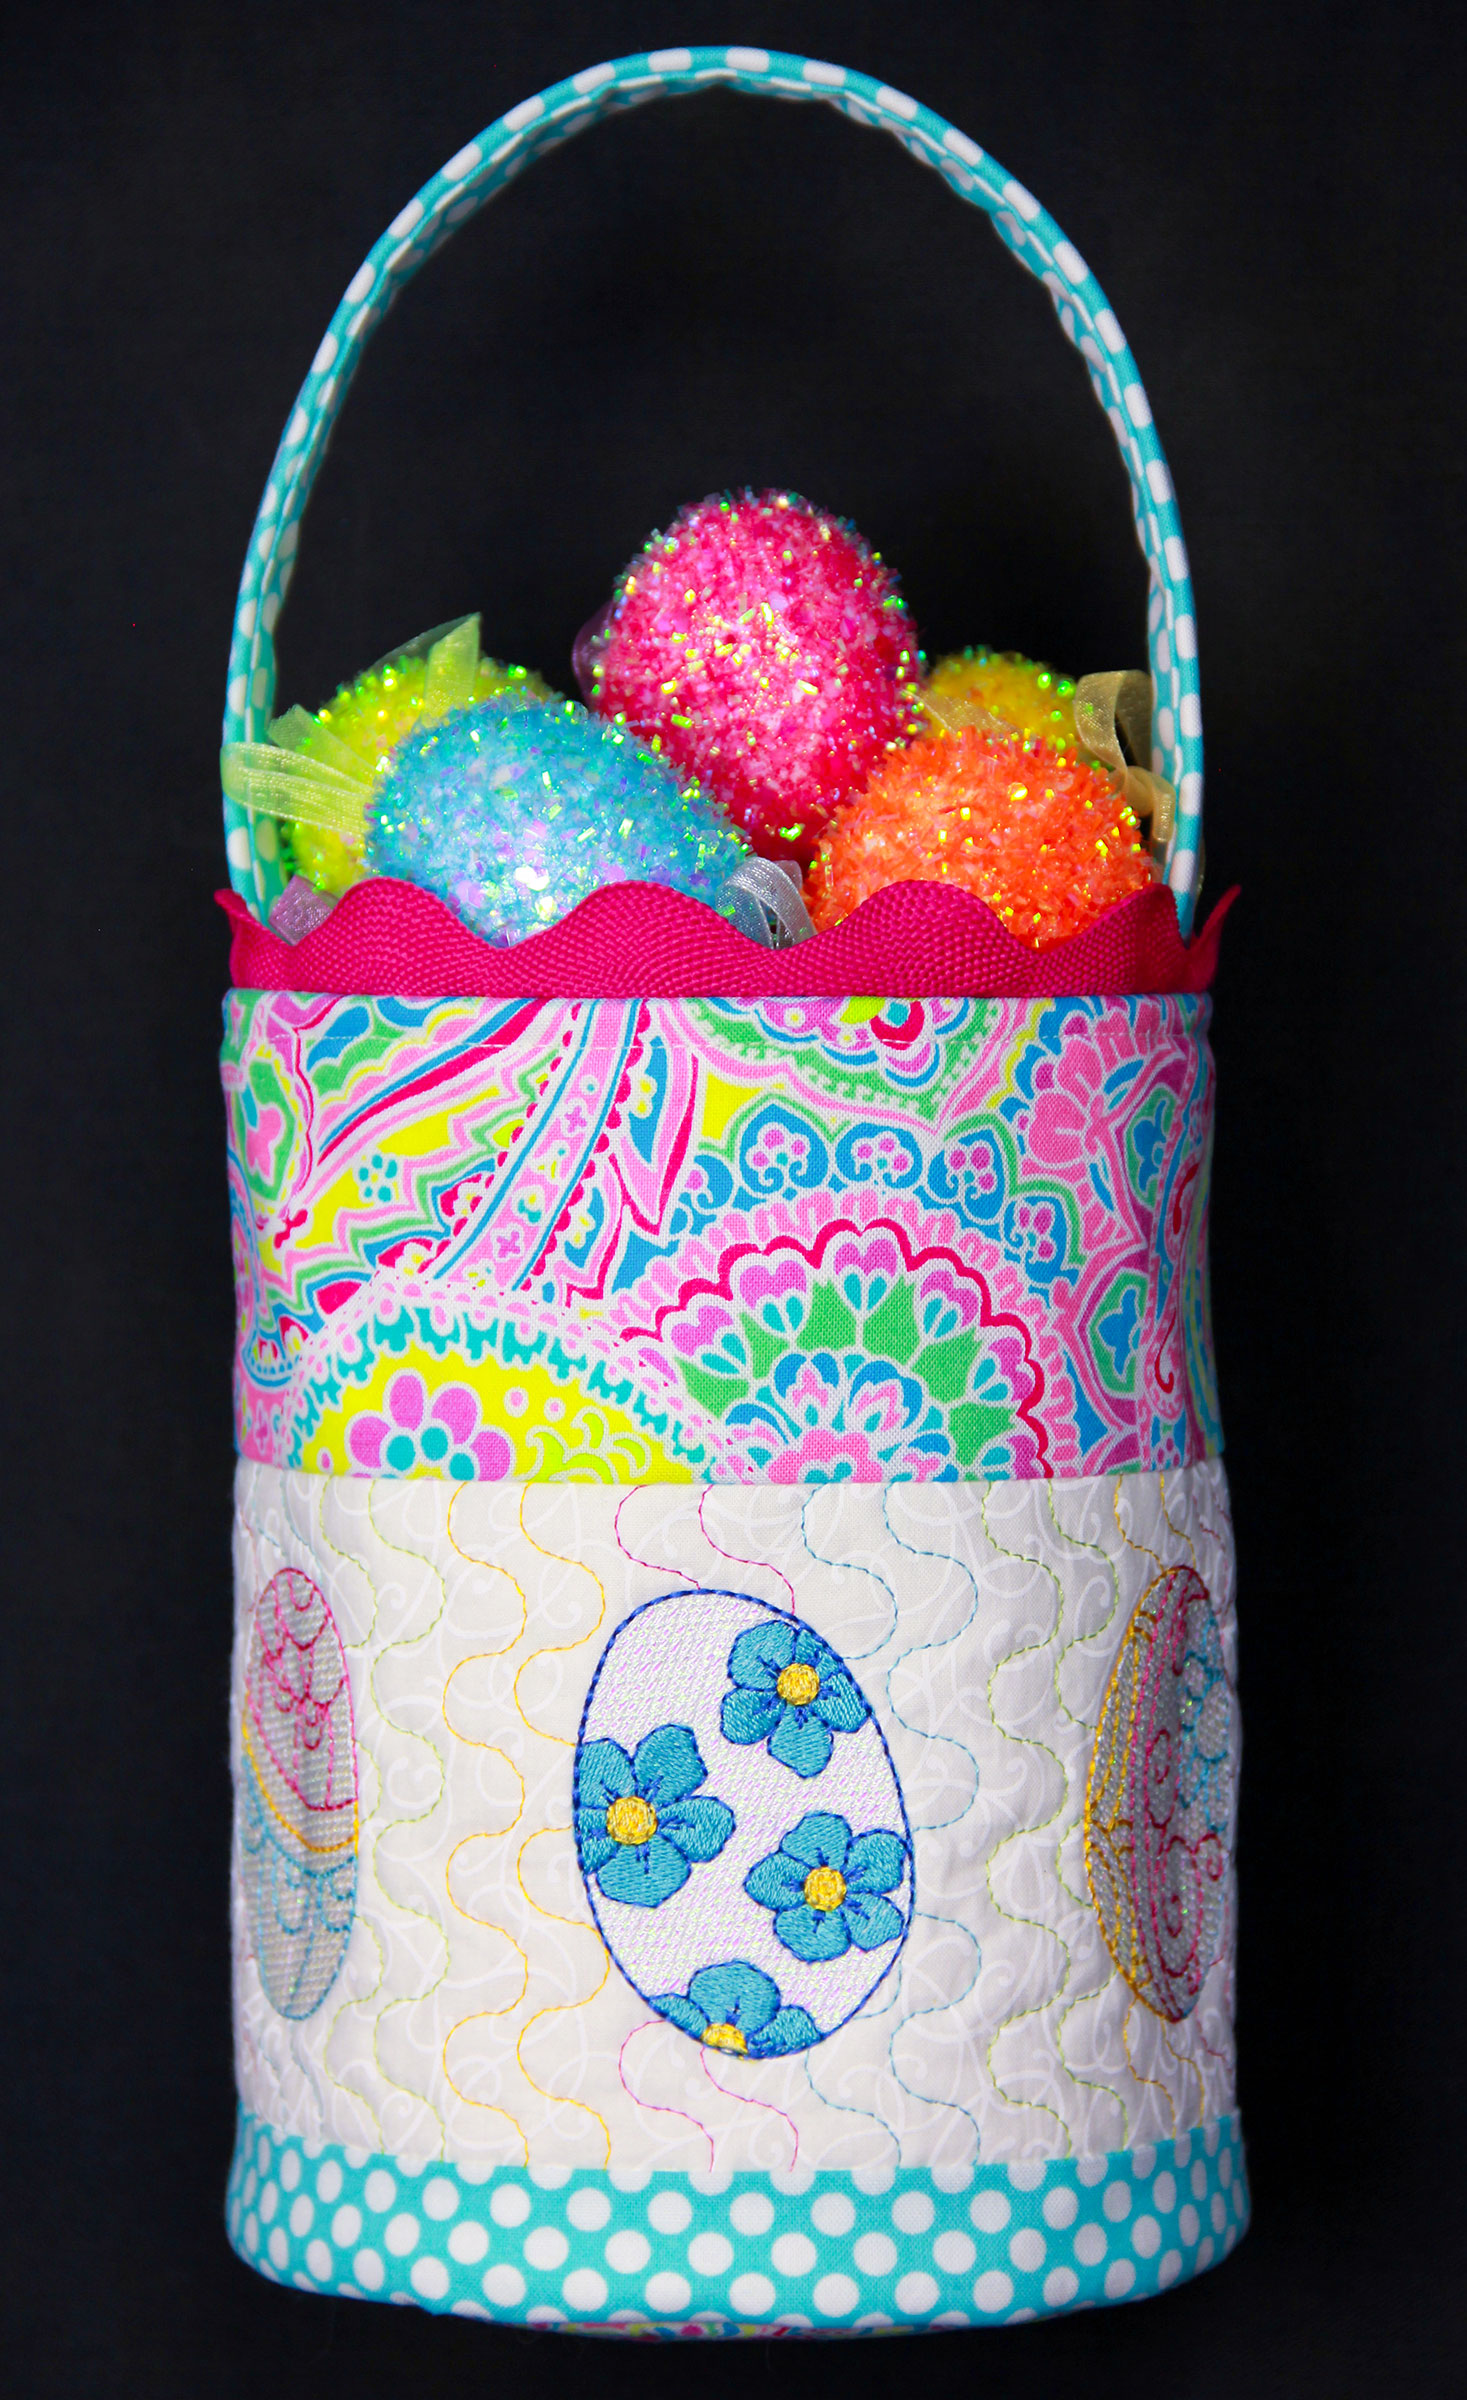 Easter Basket - PDF Pattern for basket featuring Mylar Eastertime embroidery design collection from Purely Gates. This pattern will work with most any embroidery design collection. Finished size is 7